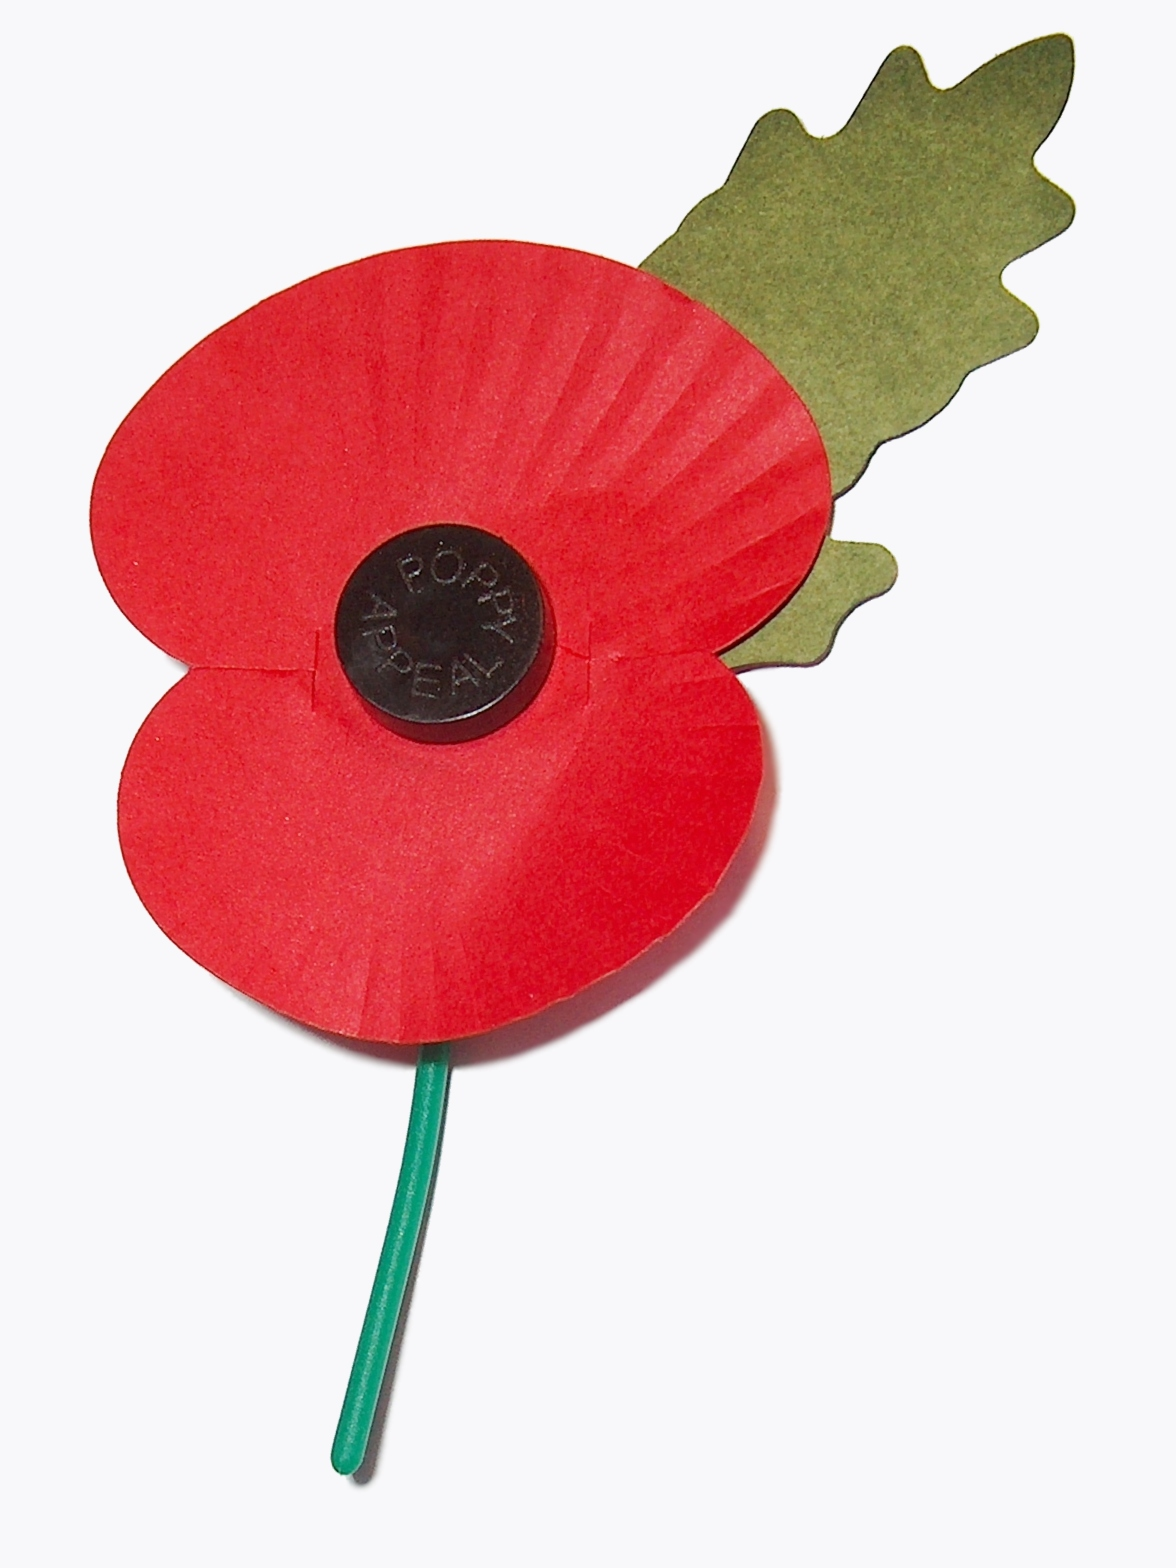 Remembrance poppy wikipedia royal british legion poppy mightylinksfo